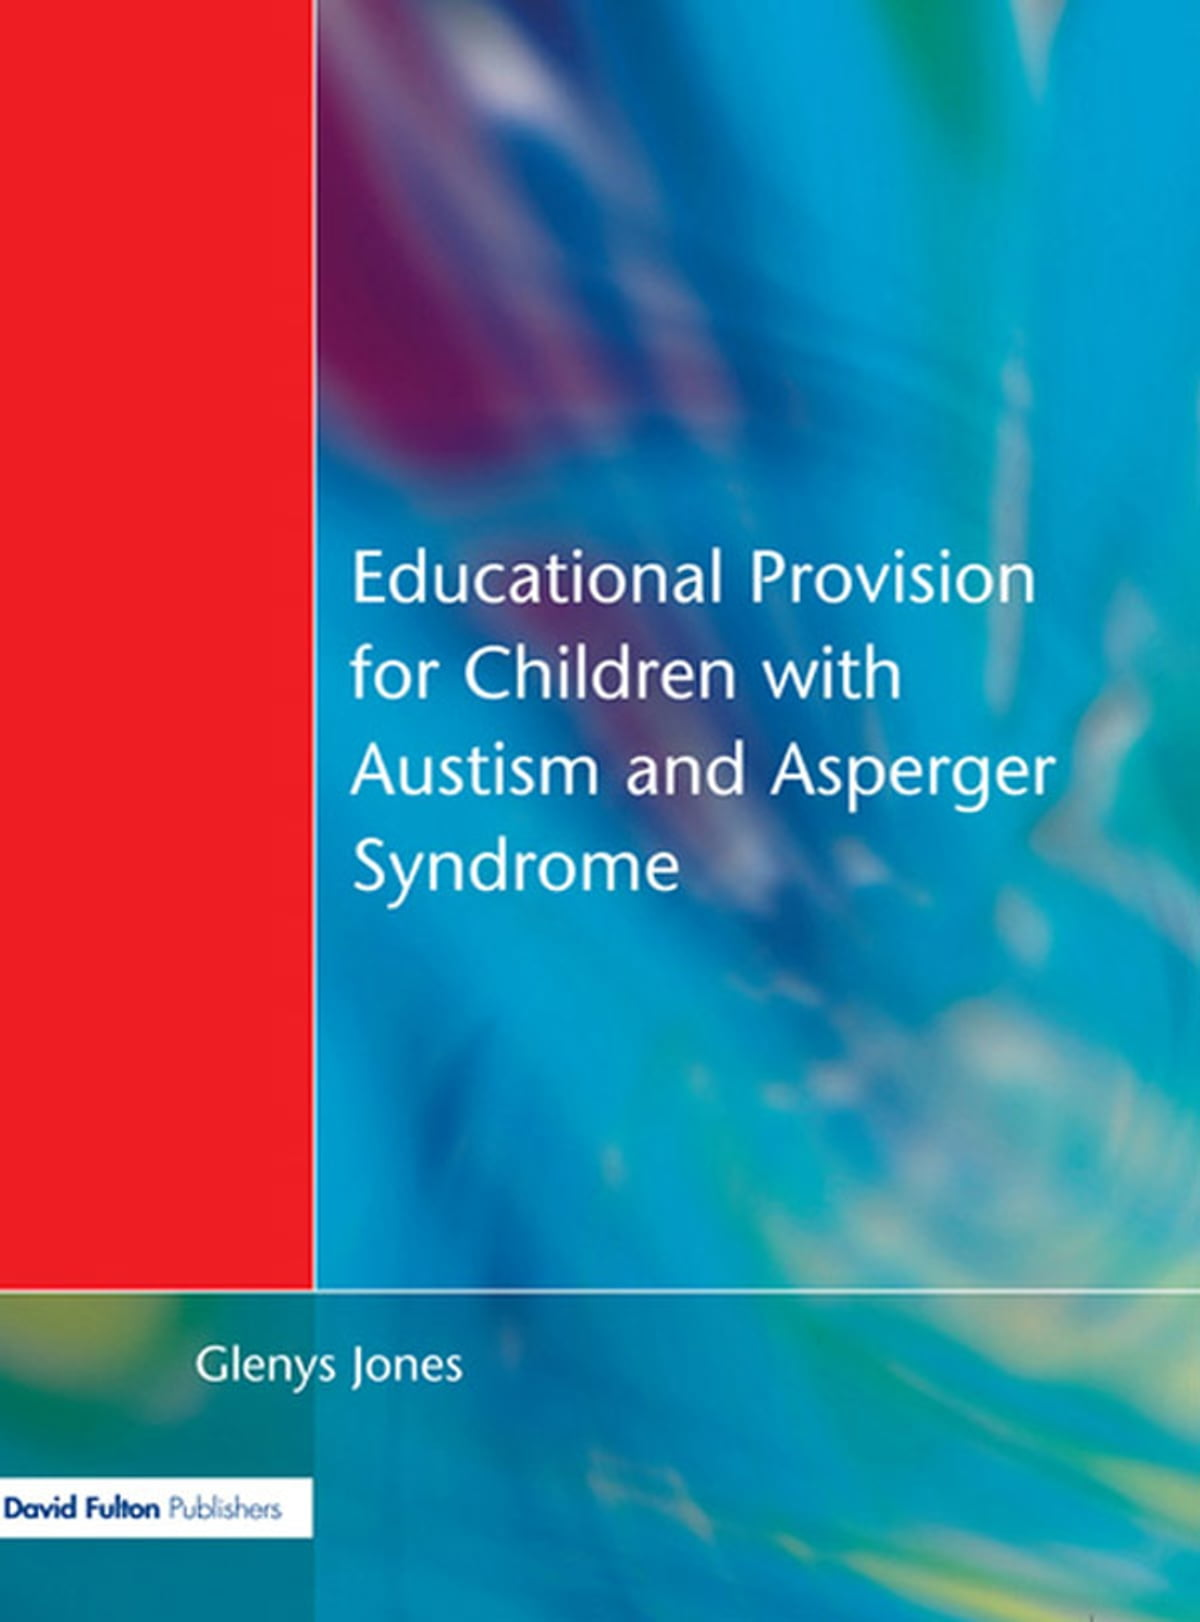 Educational Provision for Children with Autism and Asperger Syndrome eBook  by Glenys Jones - 9781136611643 | Rakuten Kobo